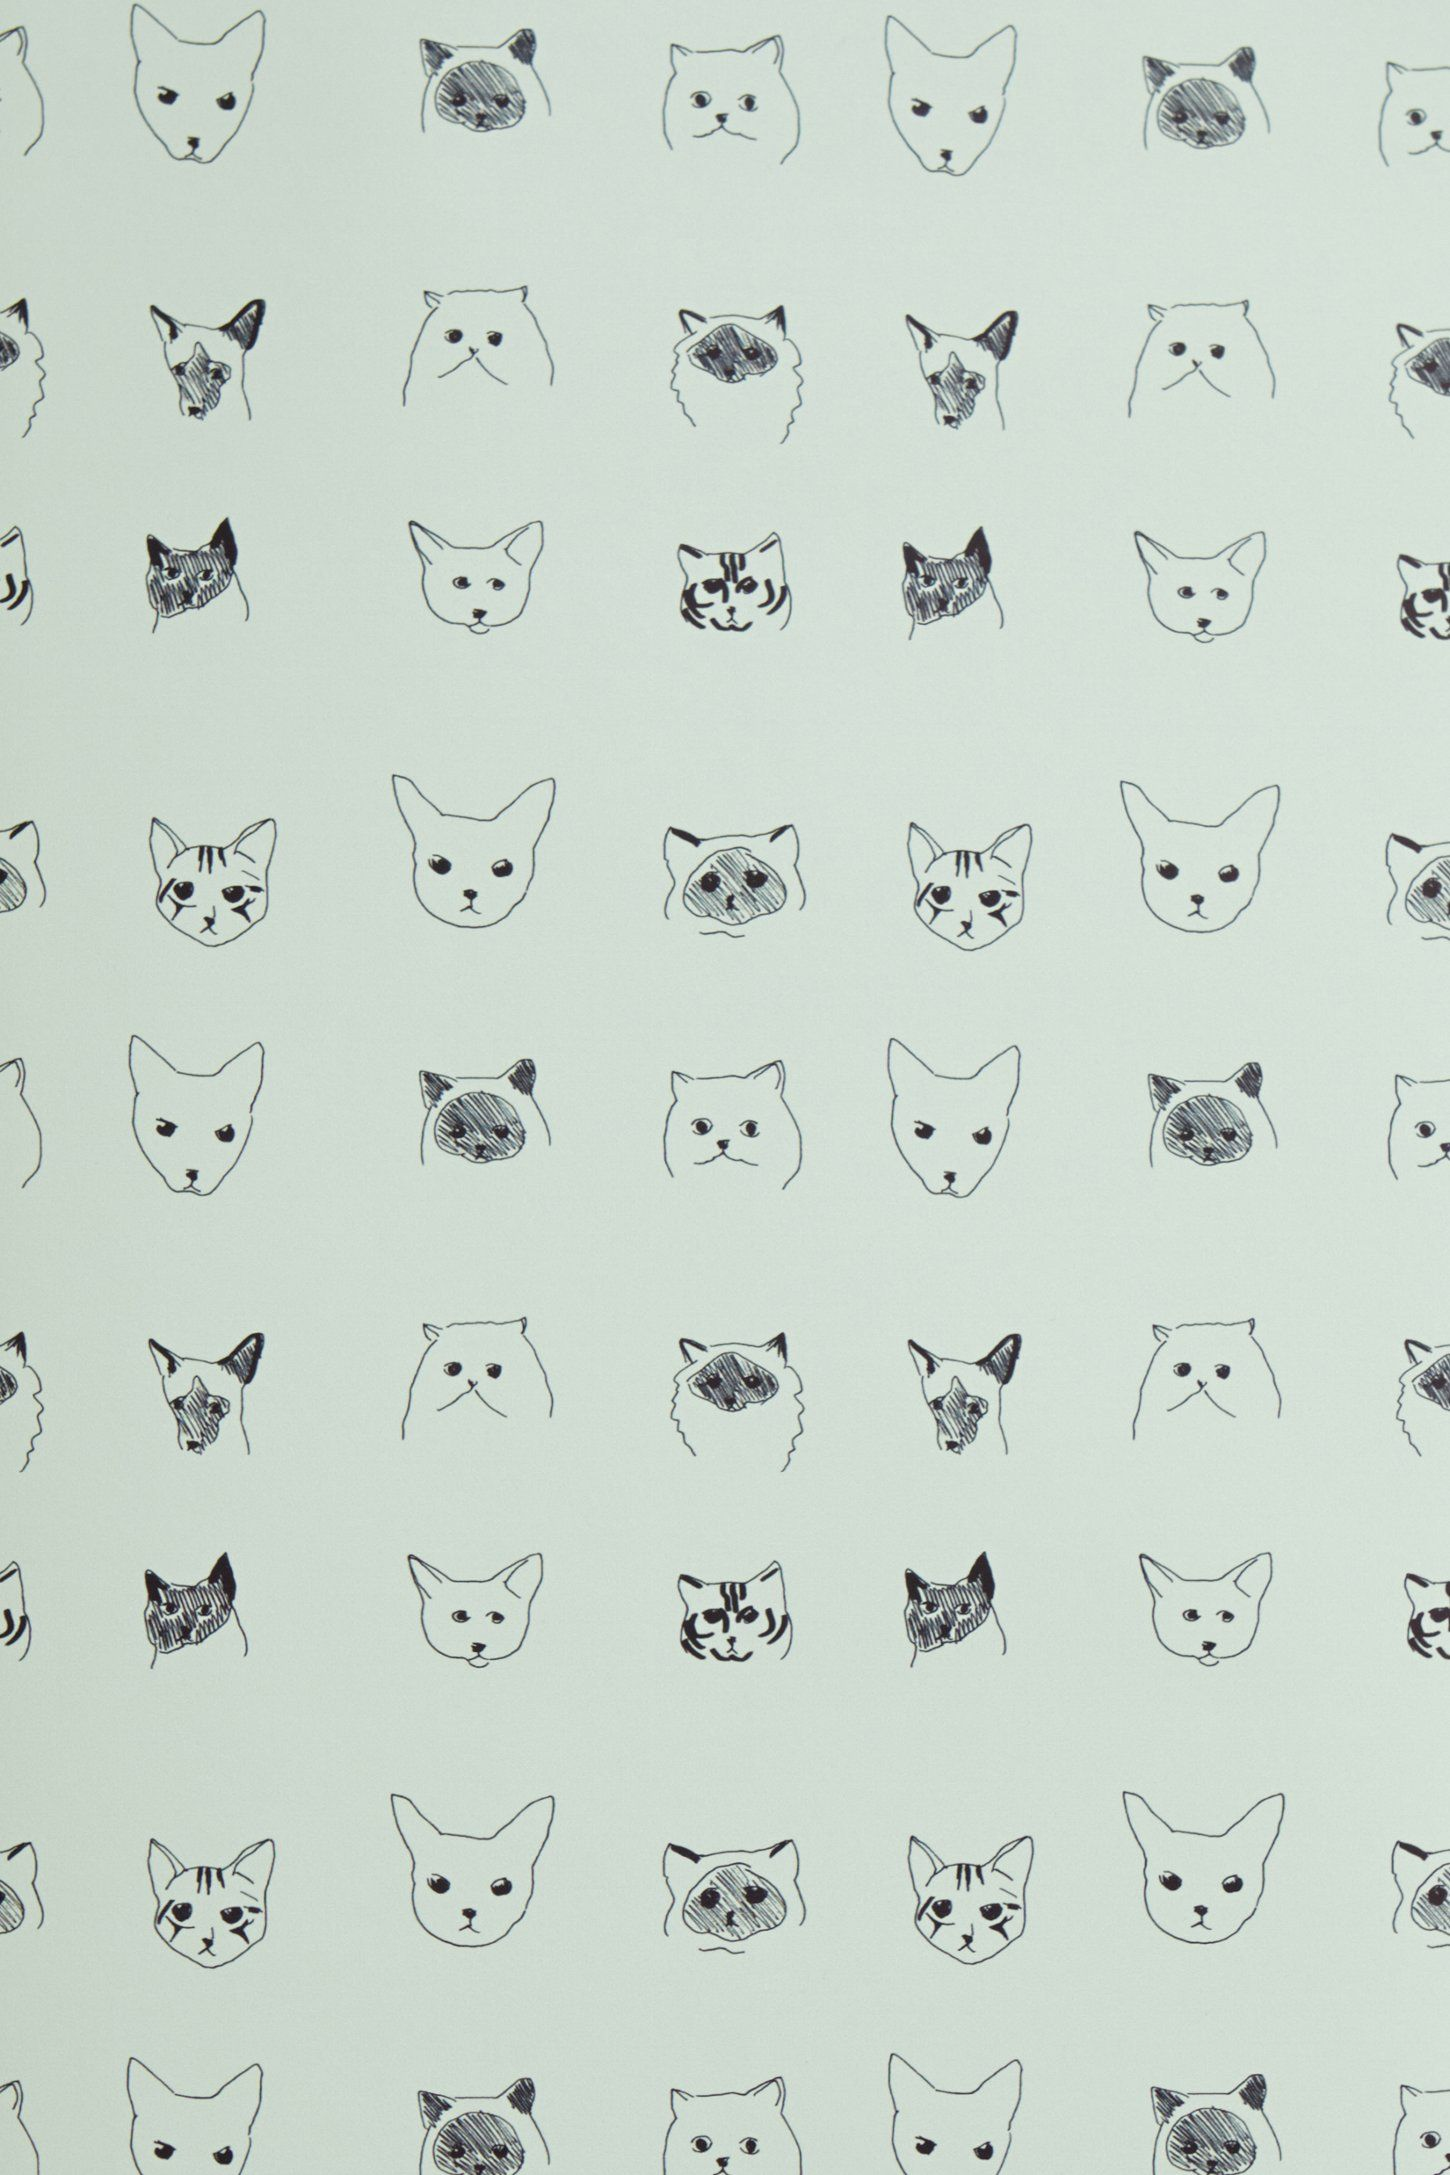 Cats Wallpaper H O M E S W E E T H O M E Cat Wallpaper